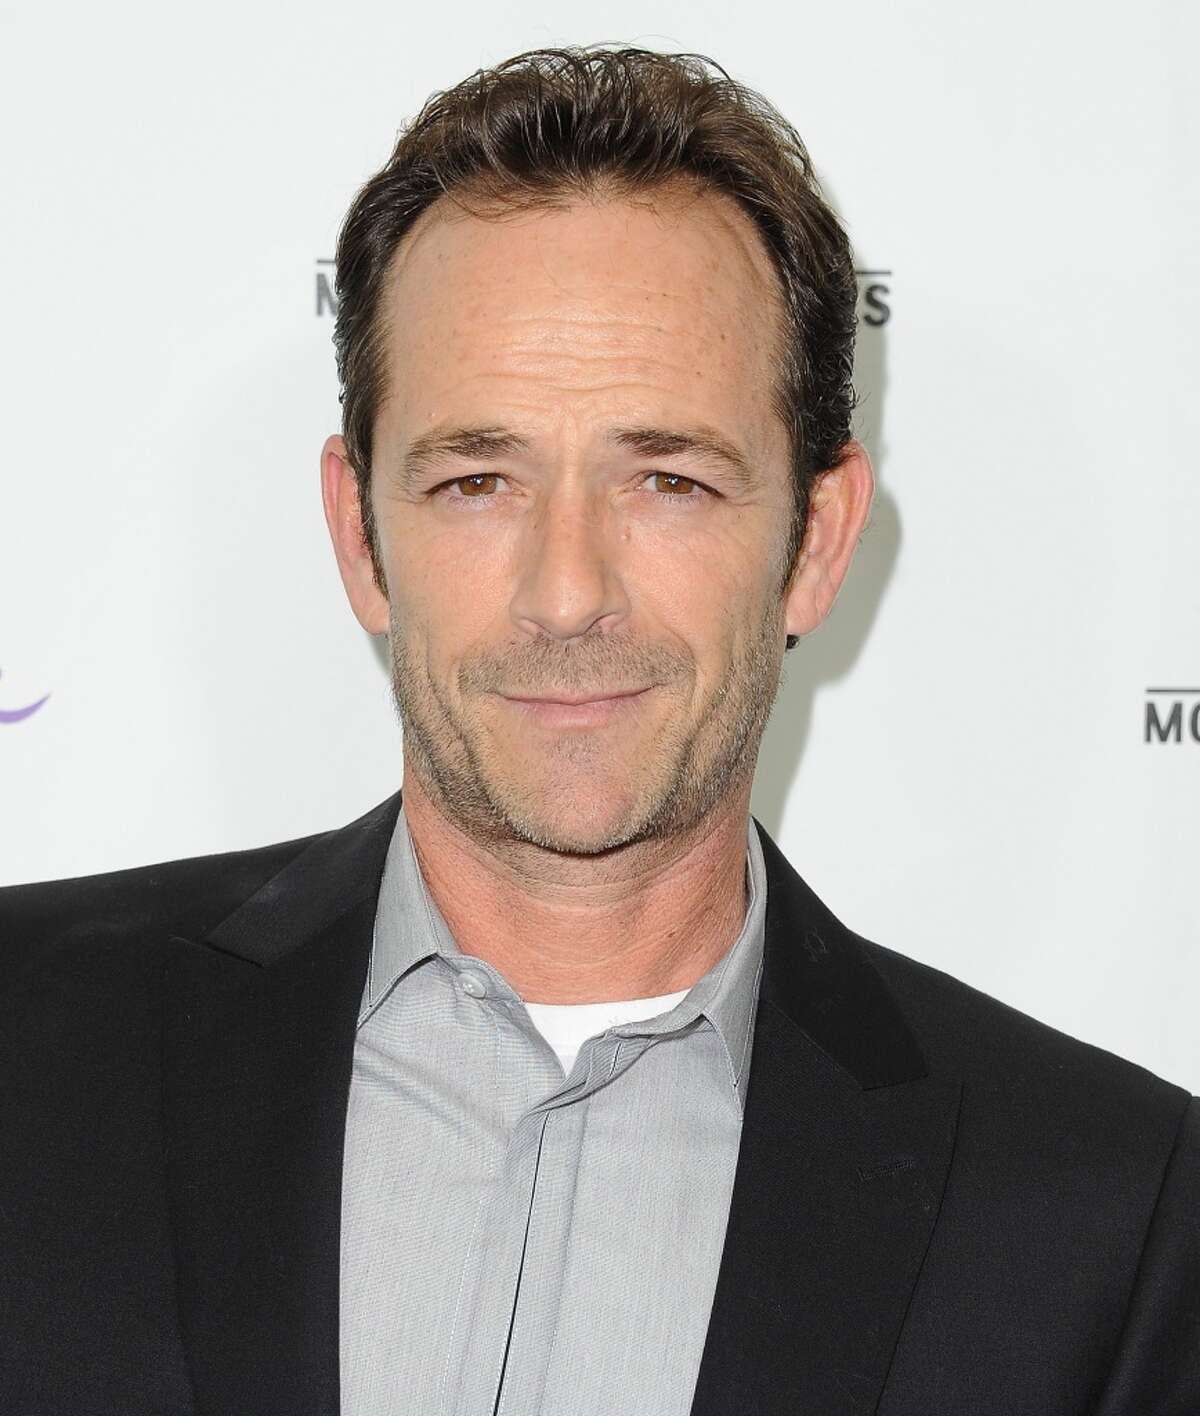 Luke Perry died in 2019 from stroke-related complications.